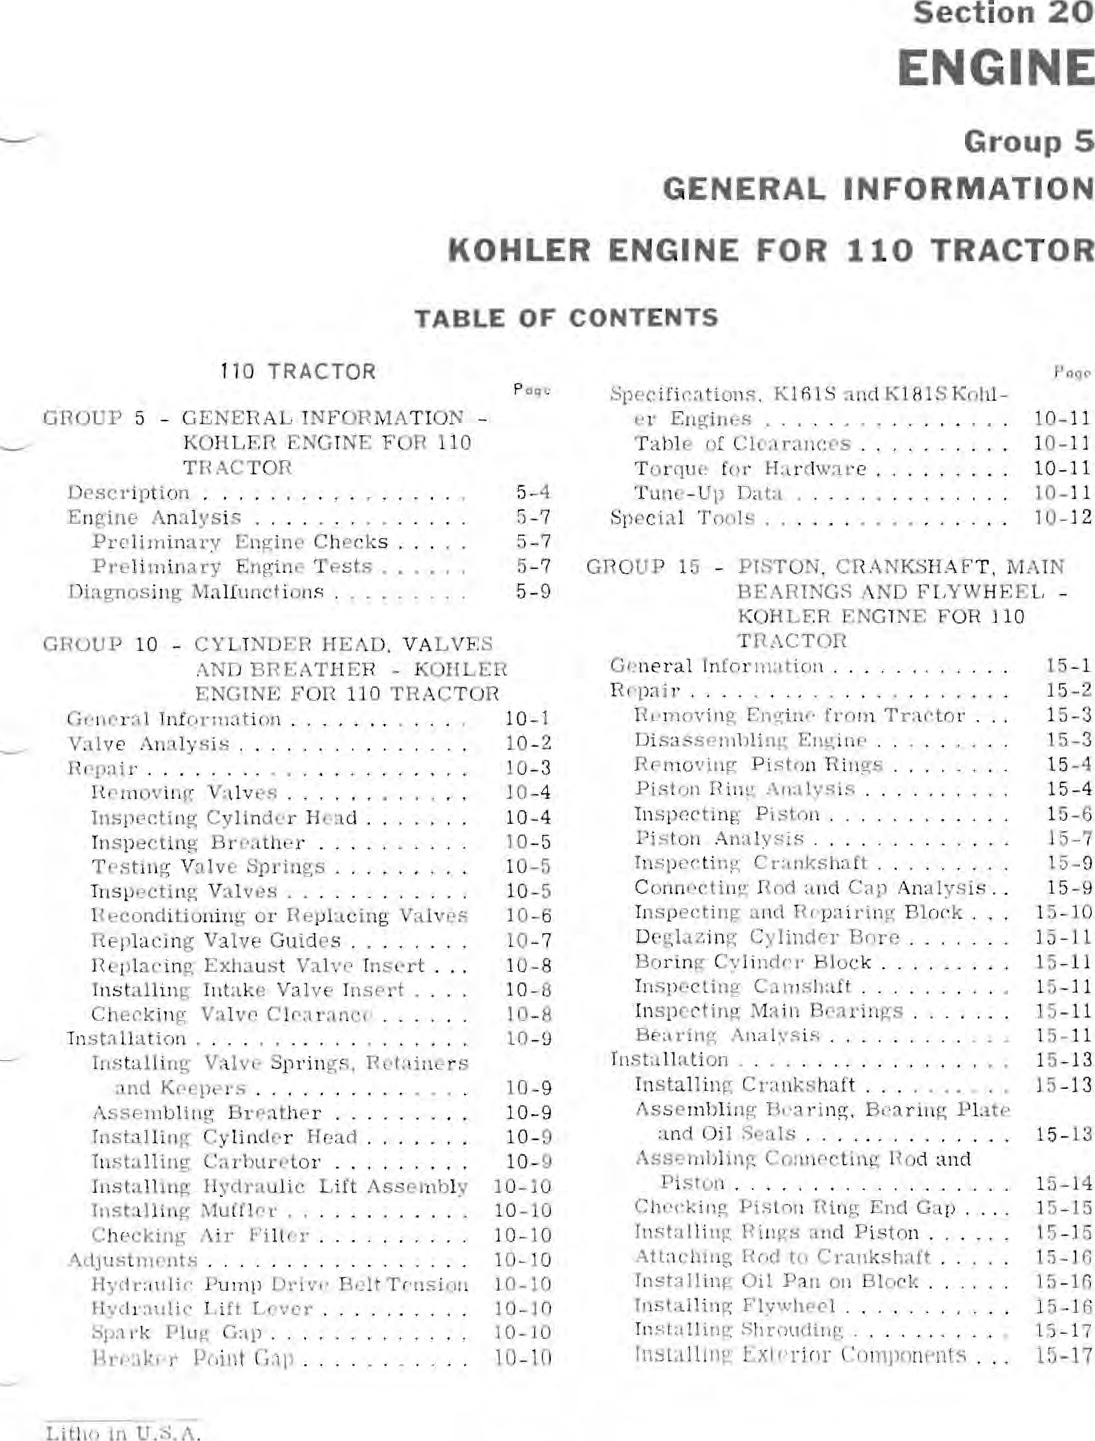 John Deere Products And Services Lawn Mower 110 Users Manual 1